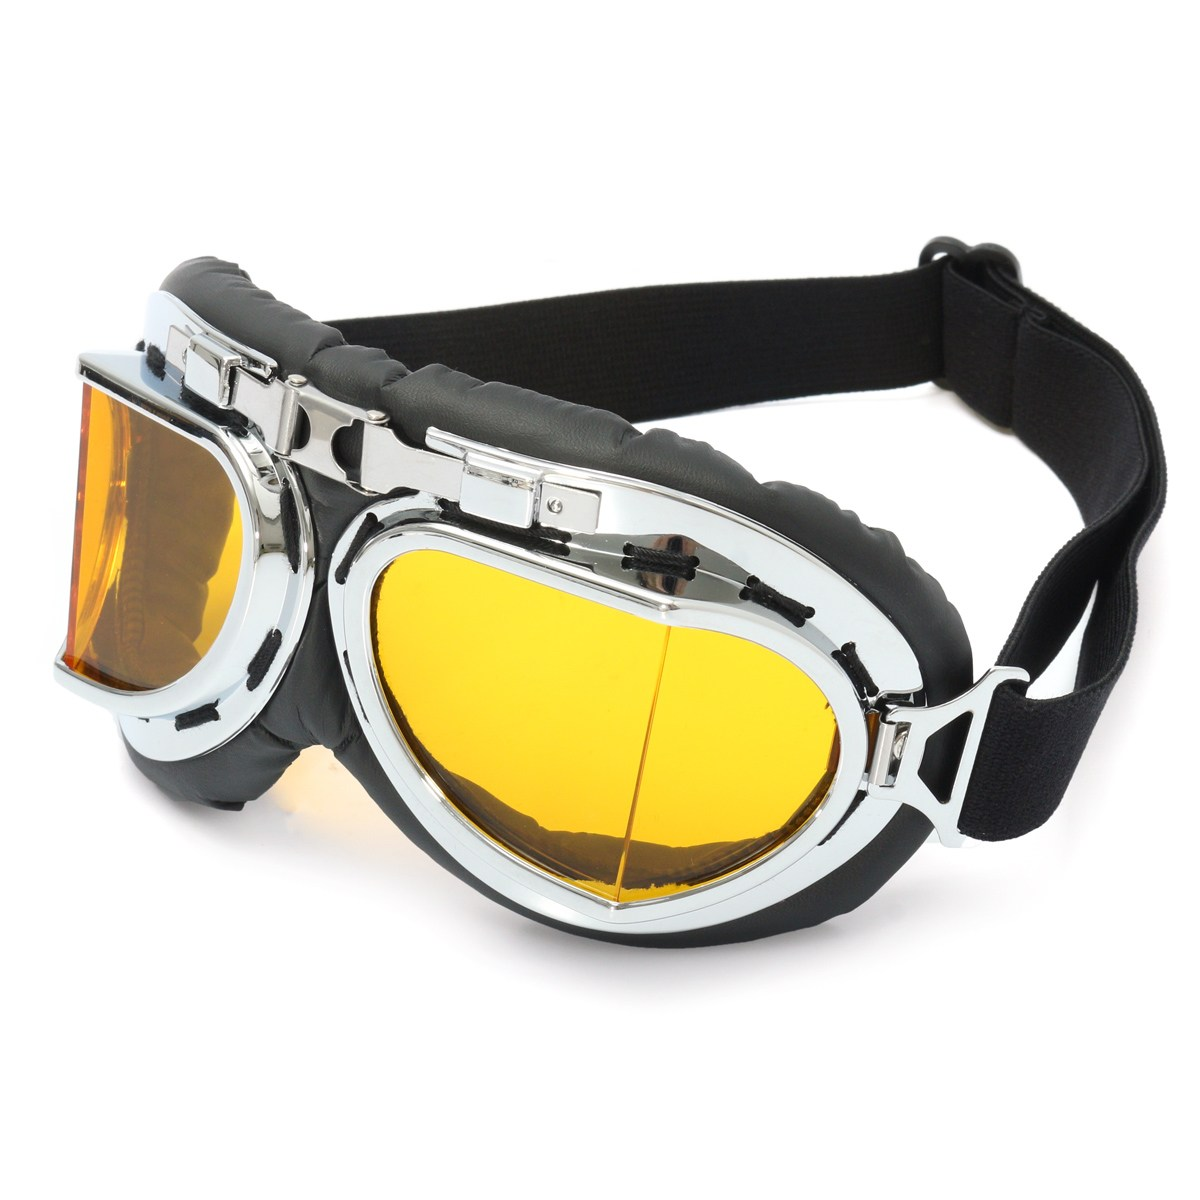 NEW Safurance Scooter Goggle Glasses Pilot Motorcycle Ski Goggle Smoke Lens Workplace Safety Eye Protection goggle